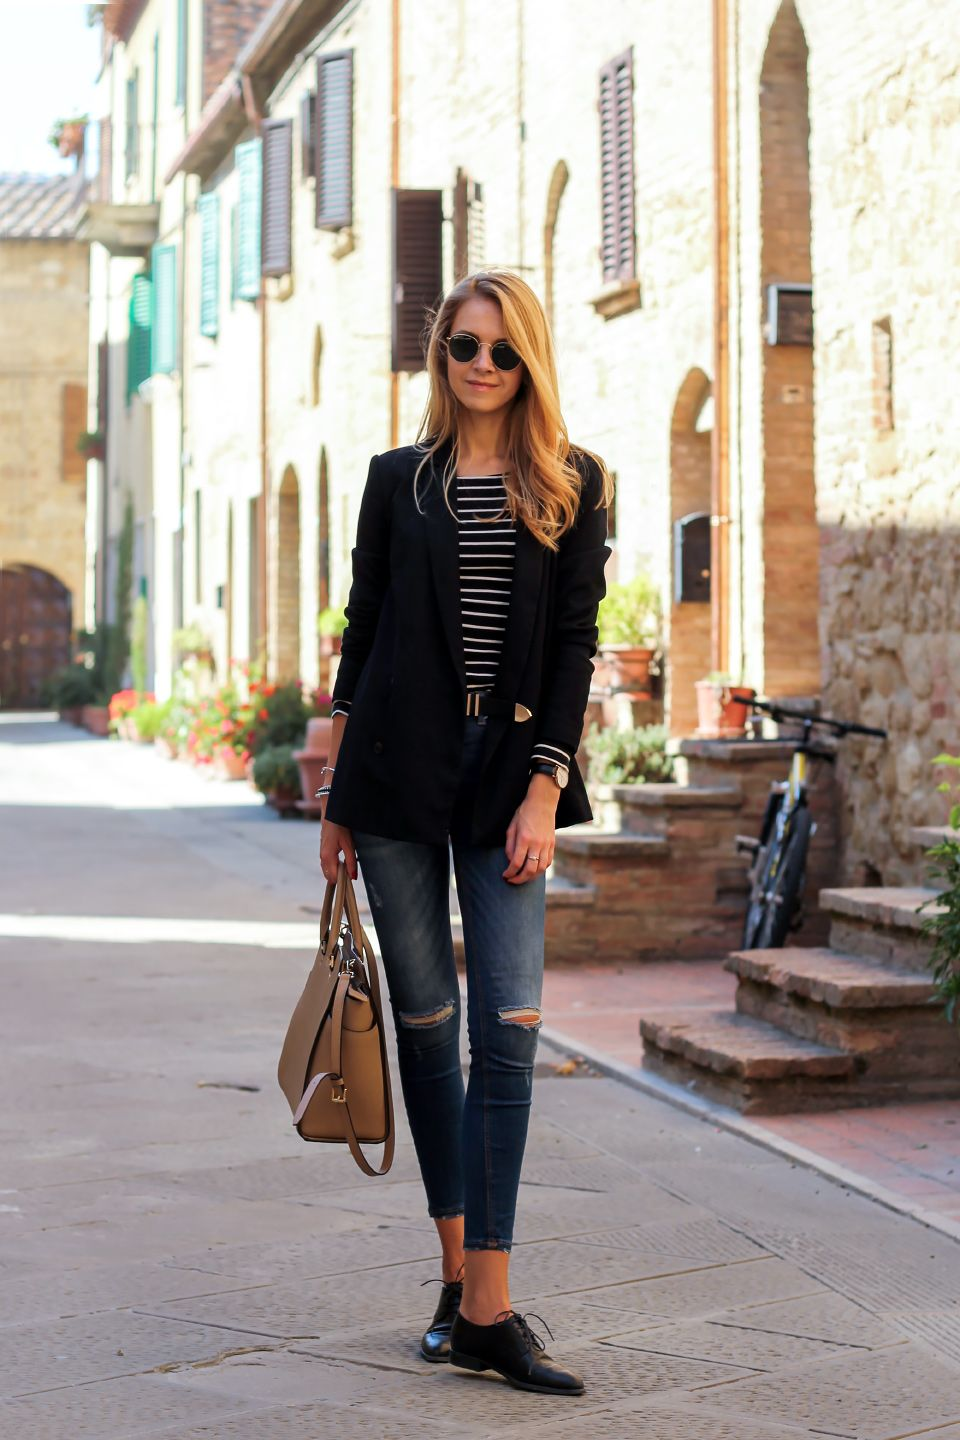 Black blazer, striped top, distressed jeans, oxford shoes, street style,  fall